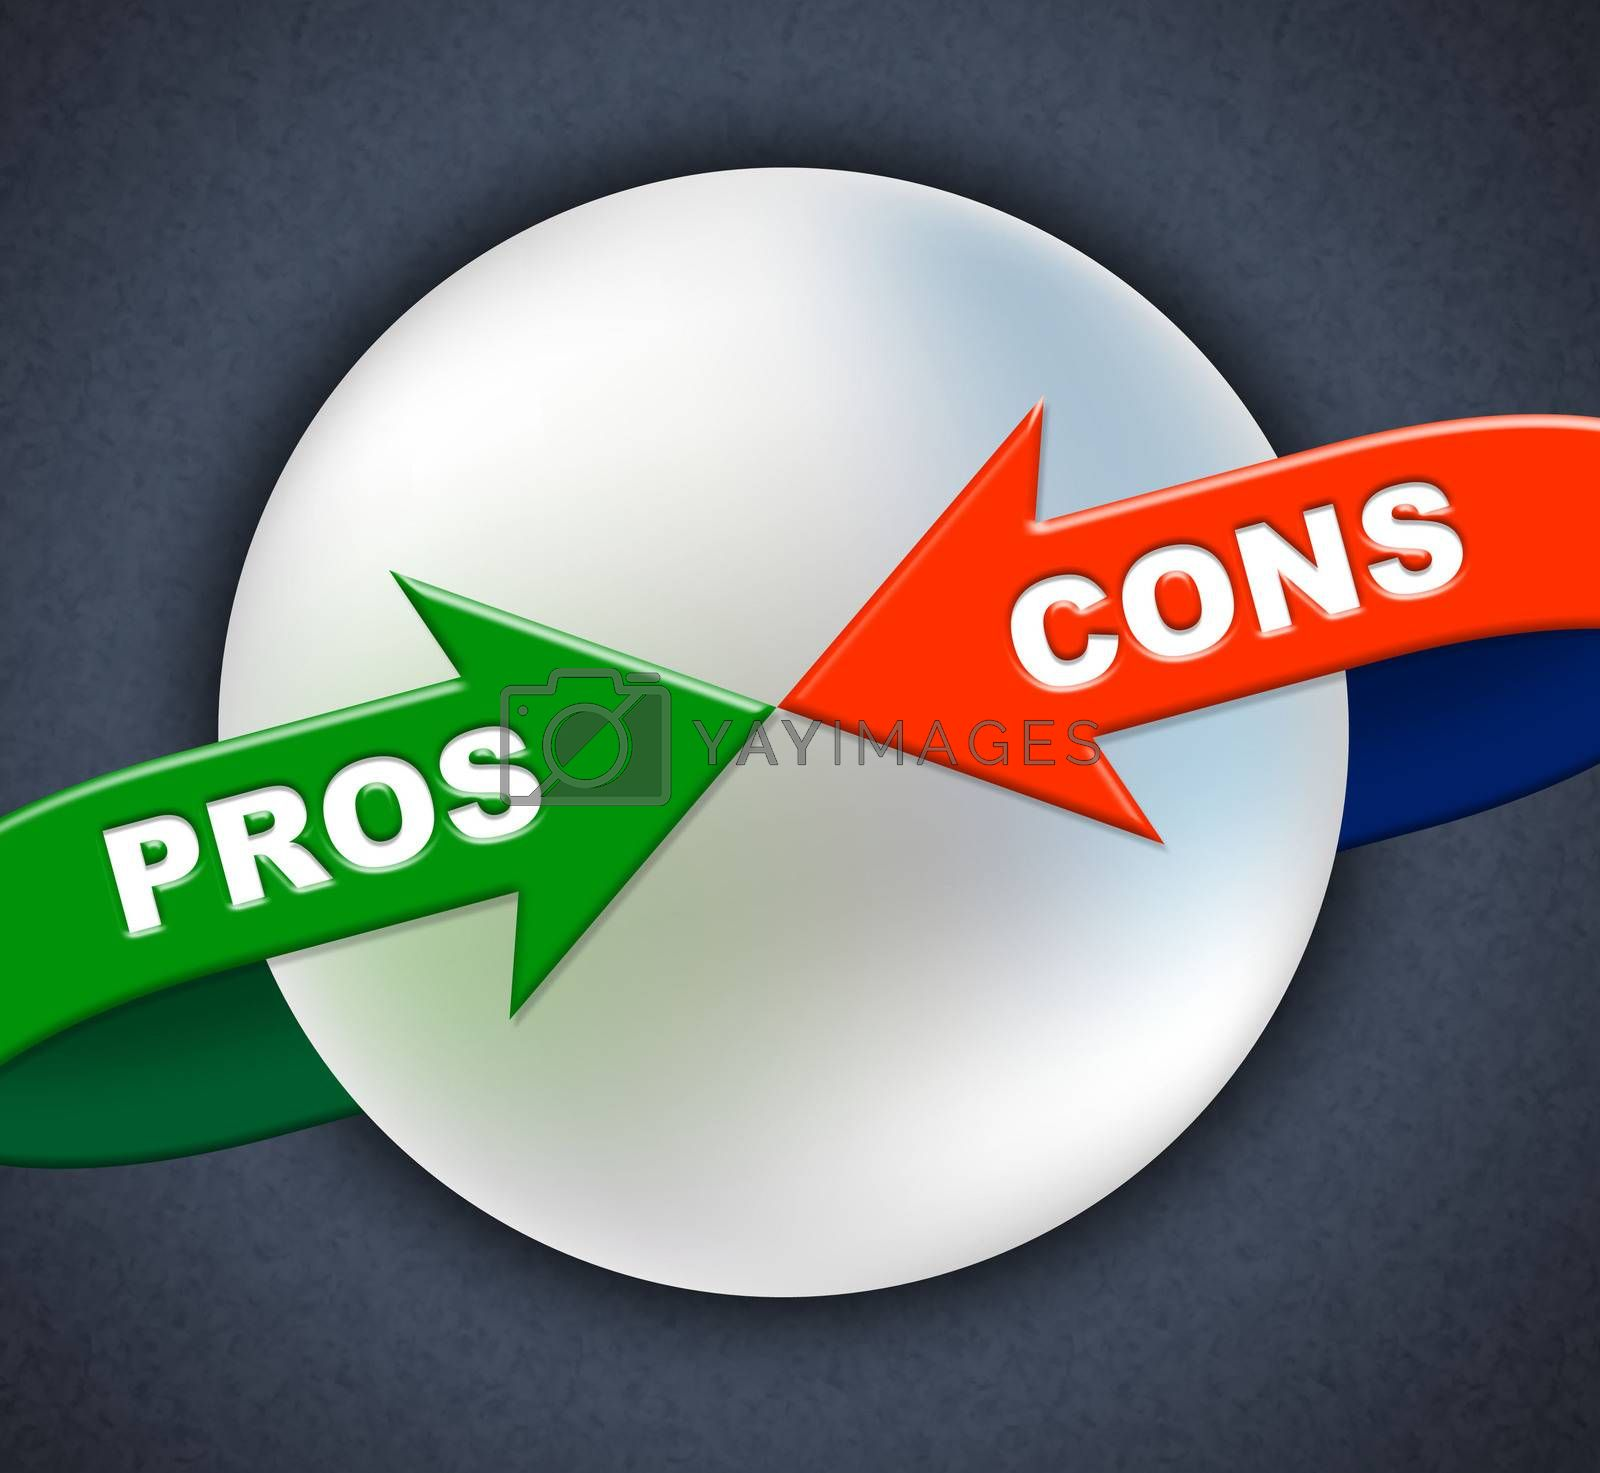 Pros Cons Arrows Shows All Right And Ok by stuartmiles